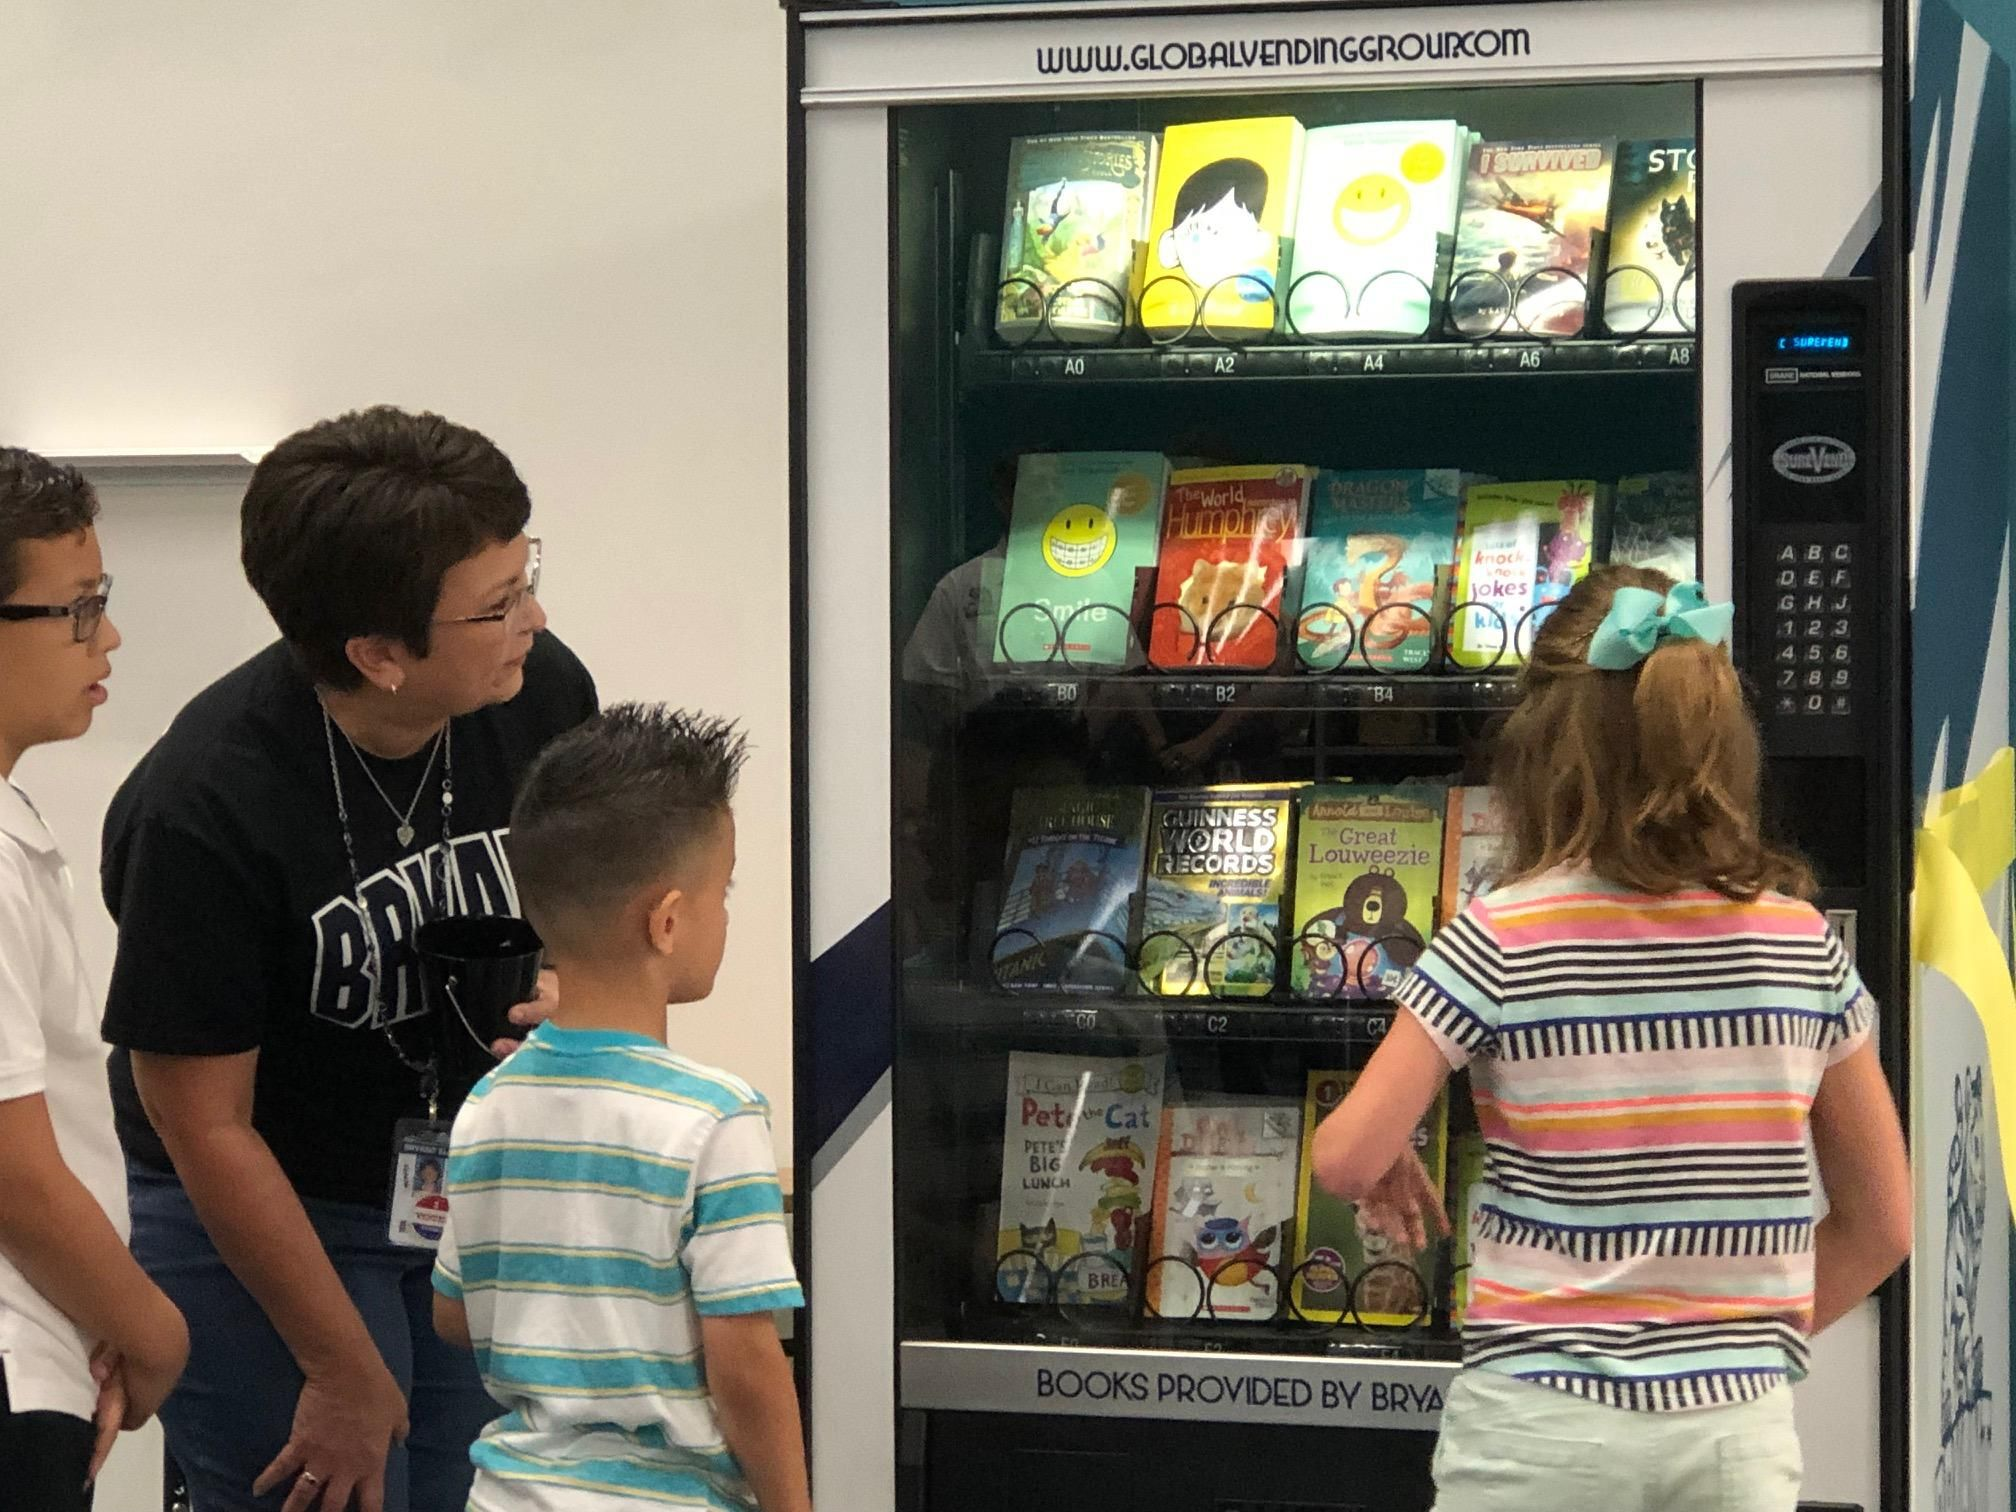 Books not candy in this school vending machine at katy